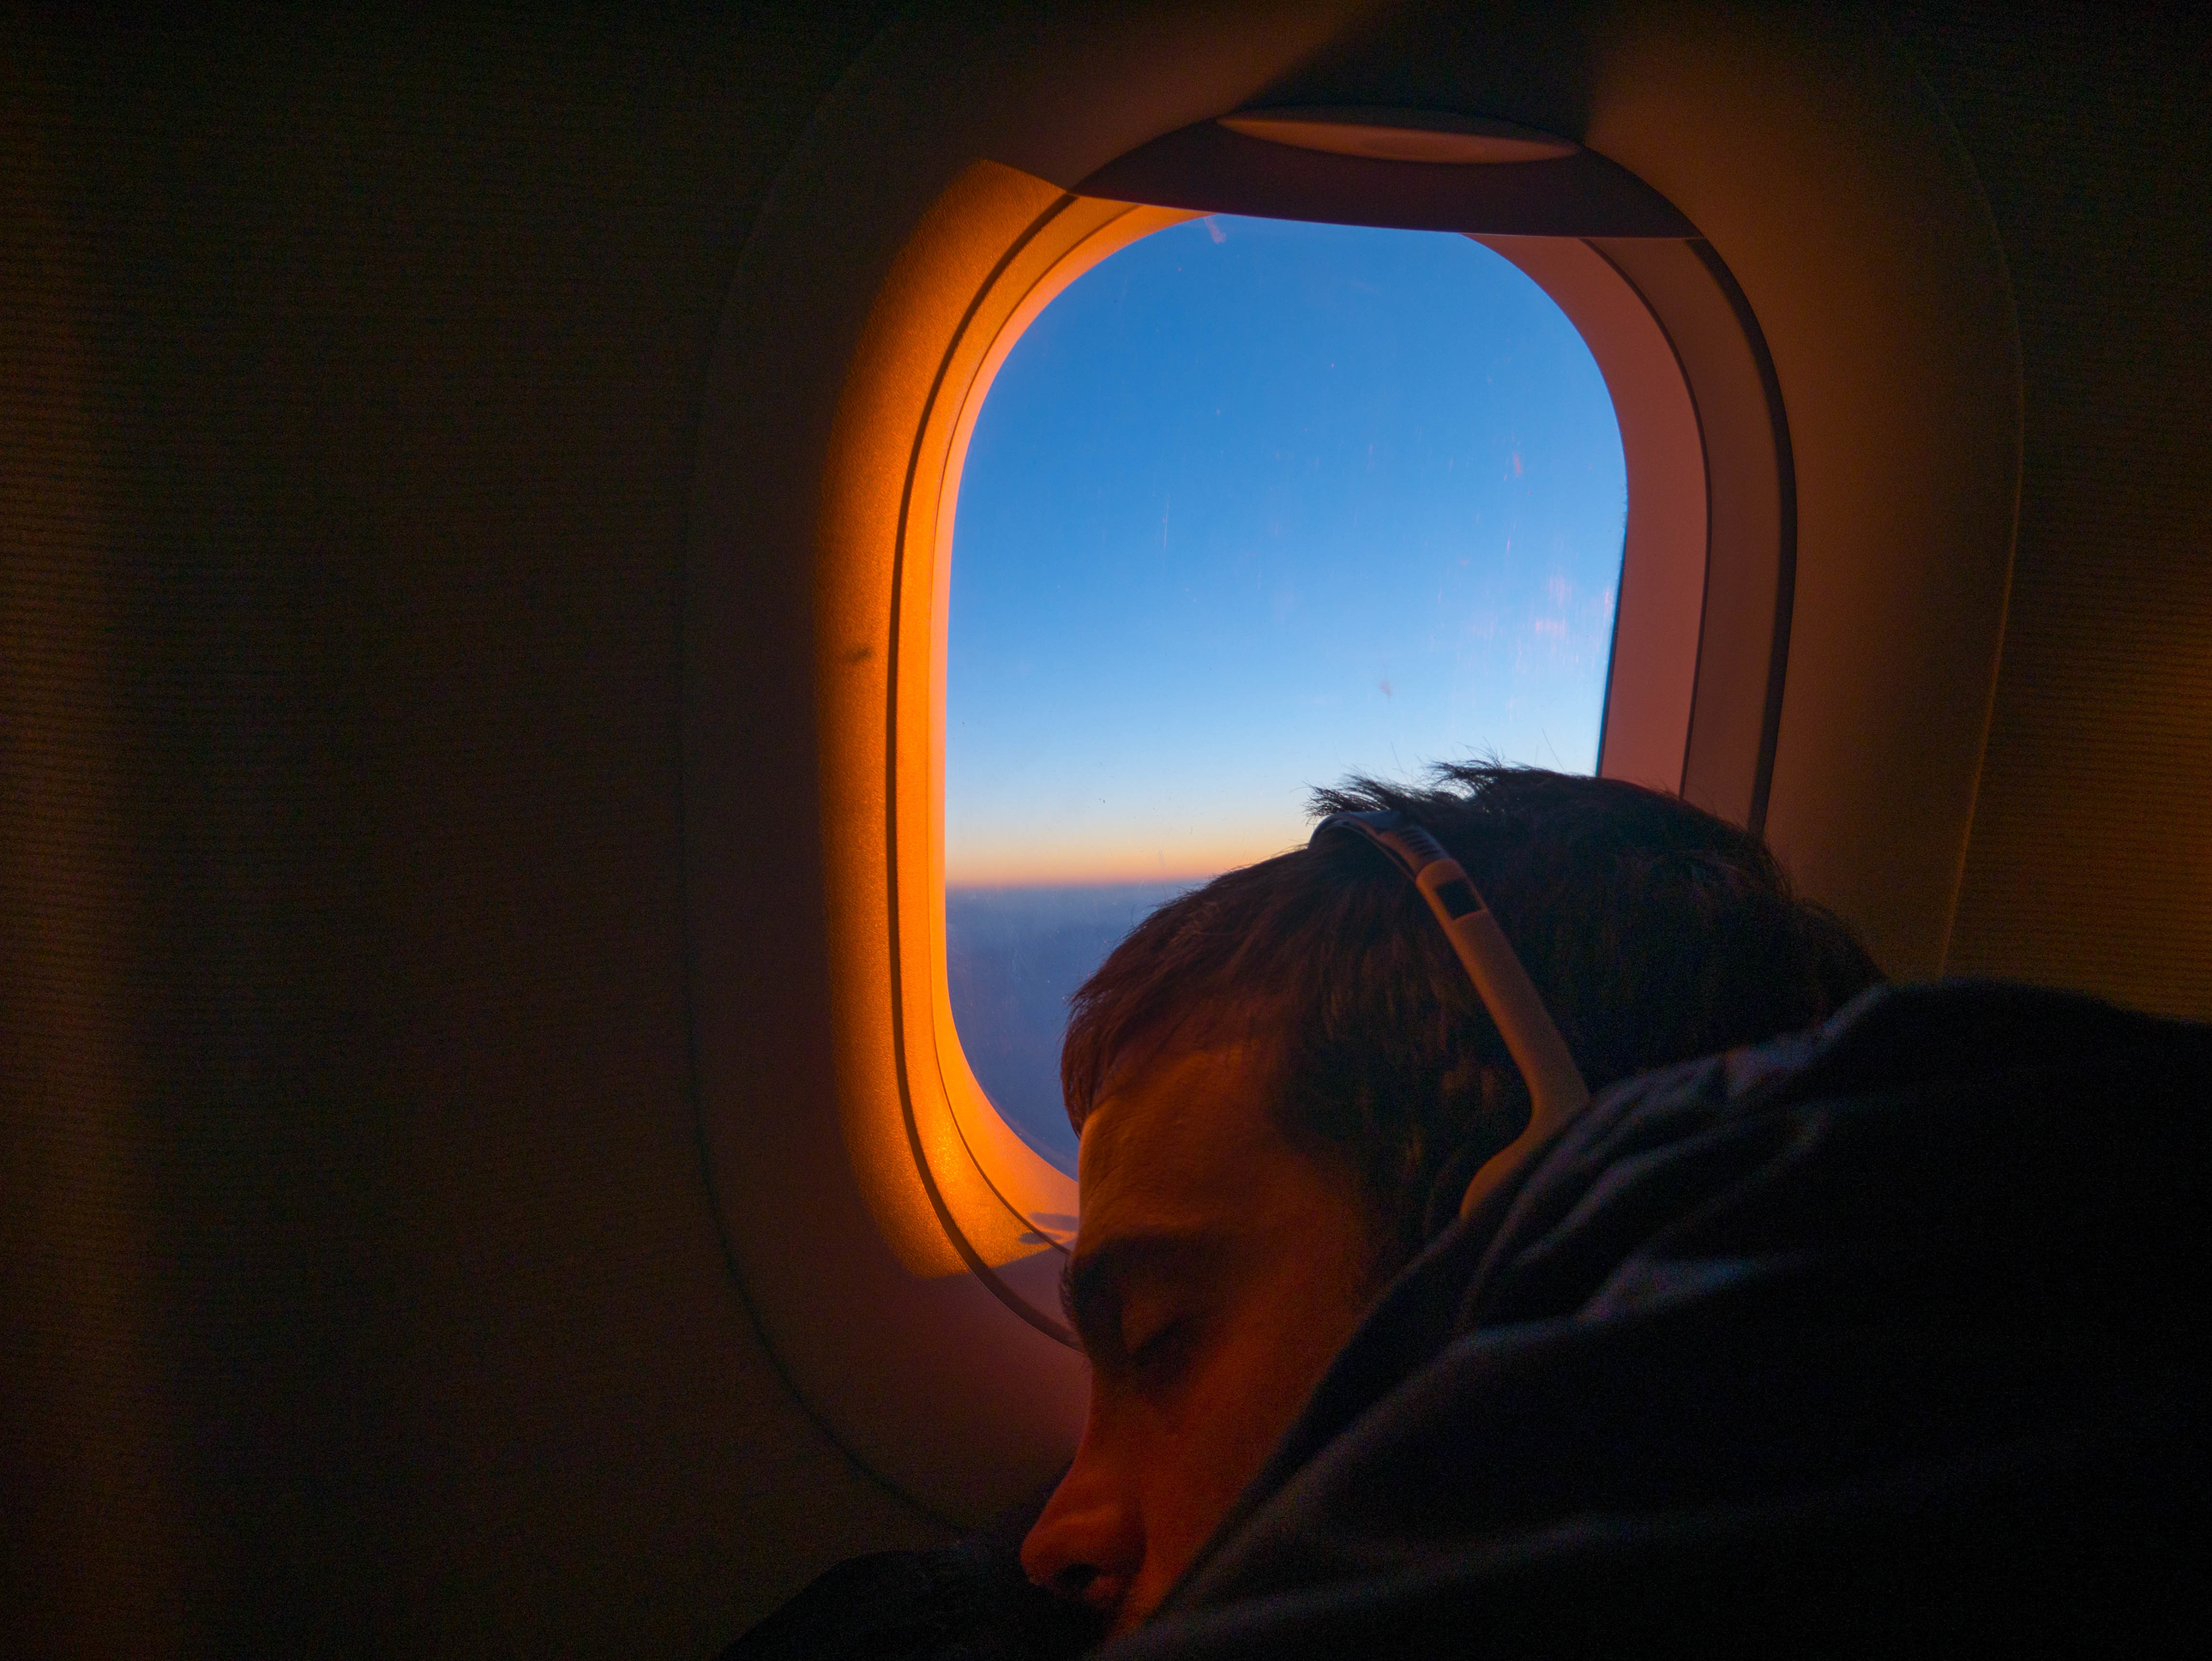 sleeping-on-plane.jpg?mtime=20180710124023#asset:102442